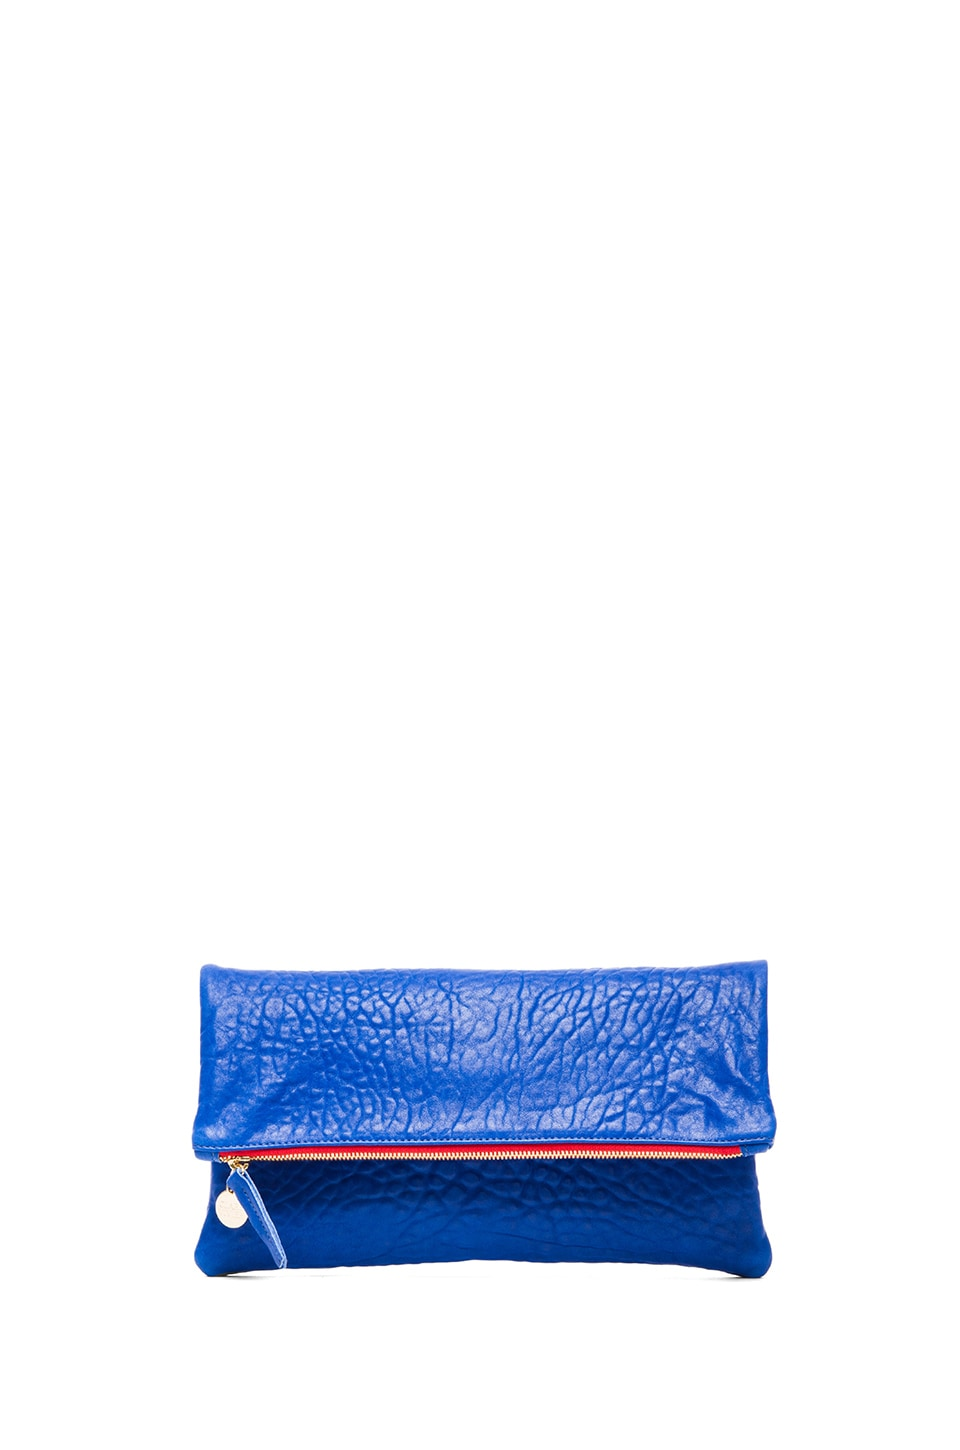 Clare V. Foldover Clutch in Pebbled Blue